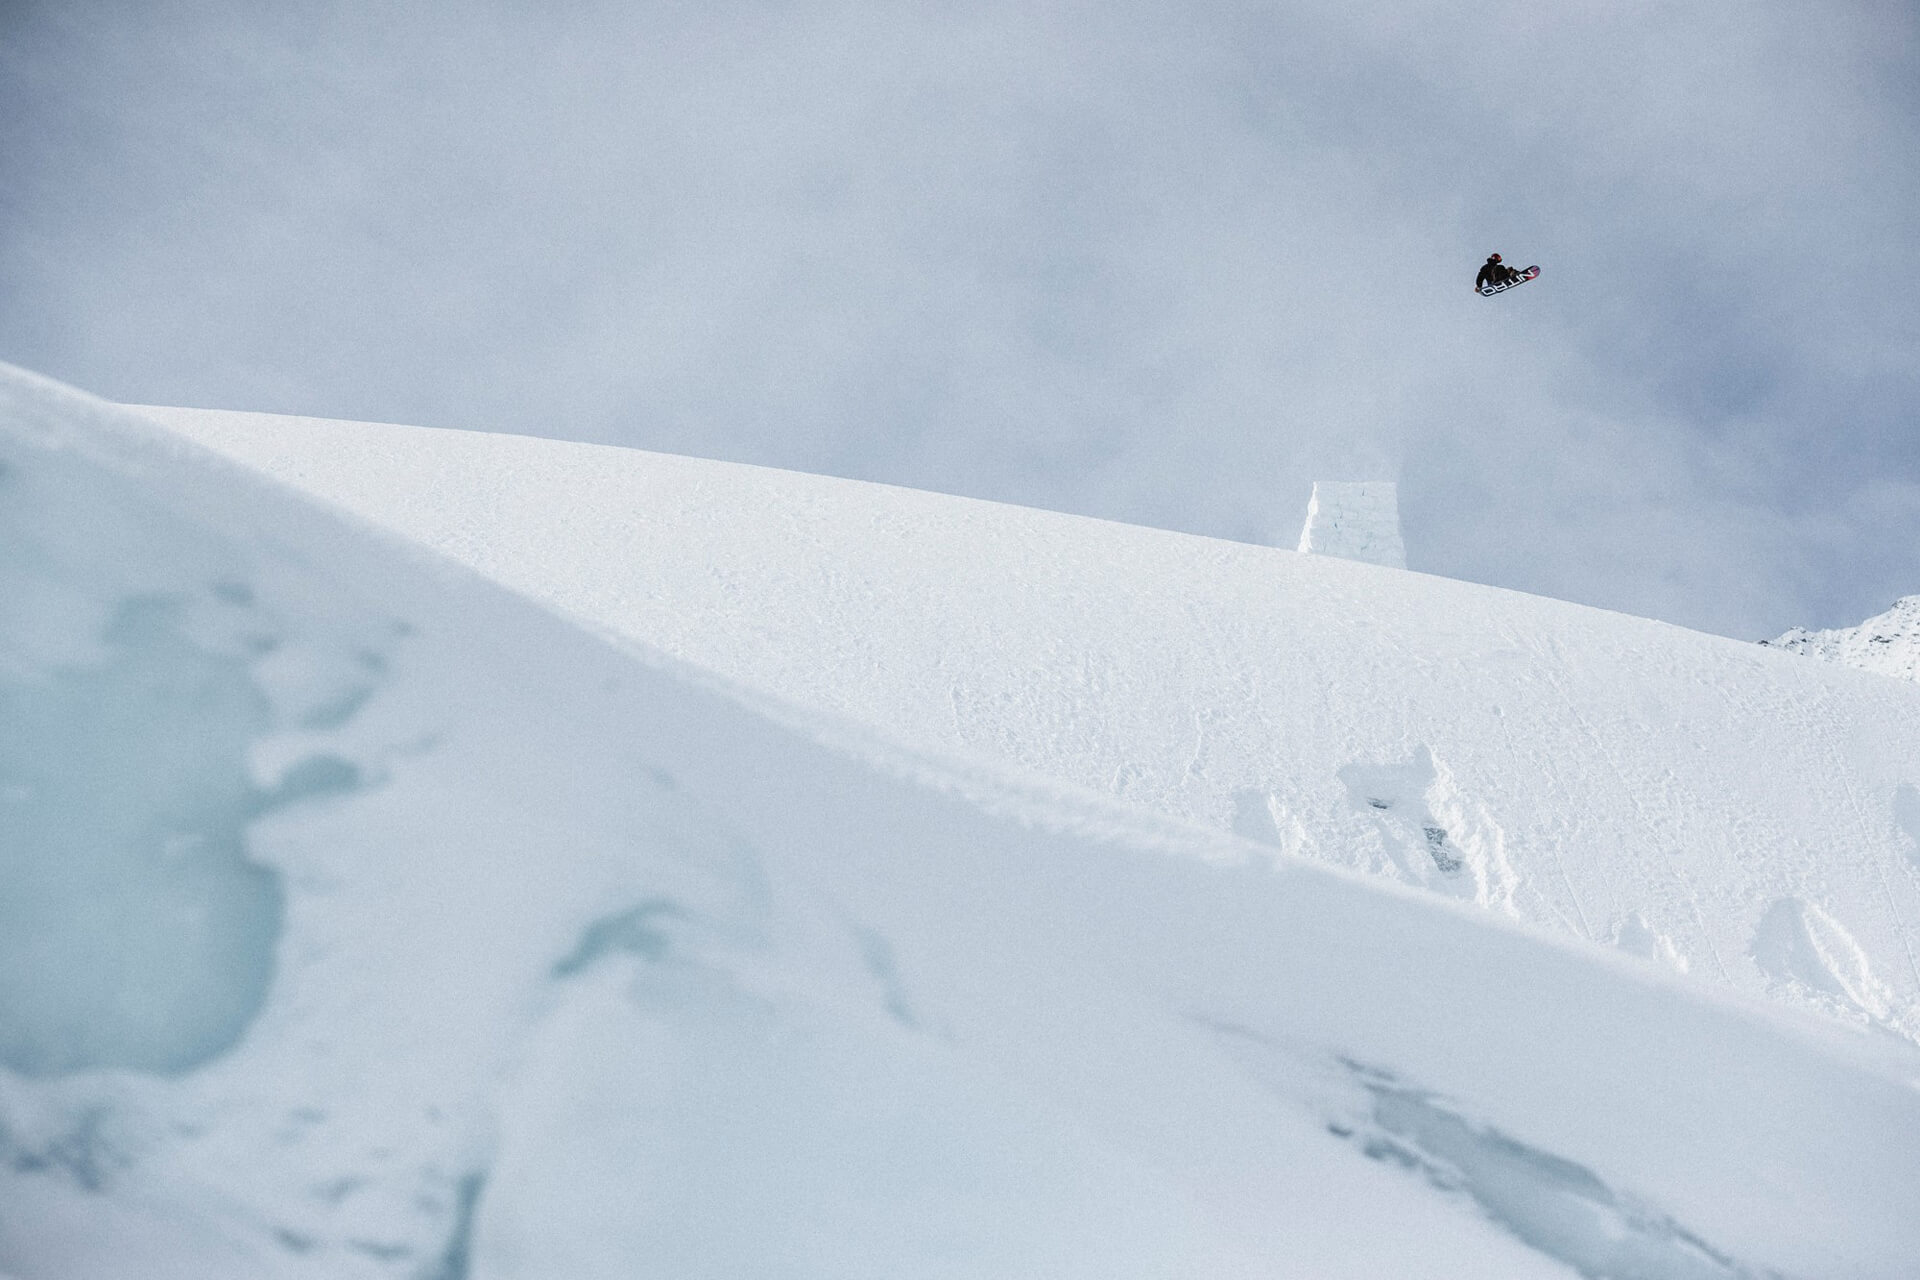 Haibike Hero Victor Delerue in the air on his snowboard after a big jump